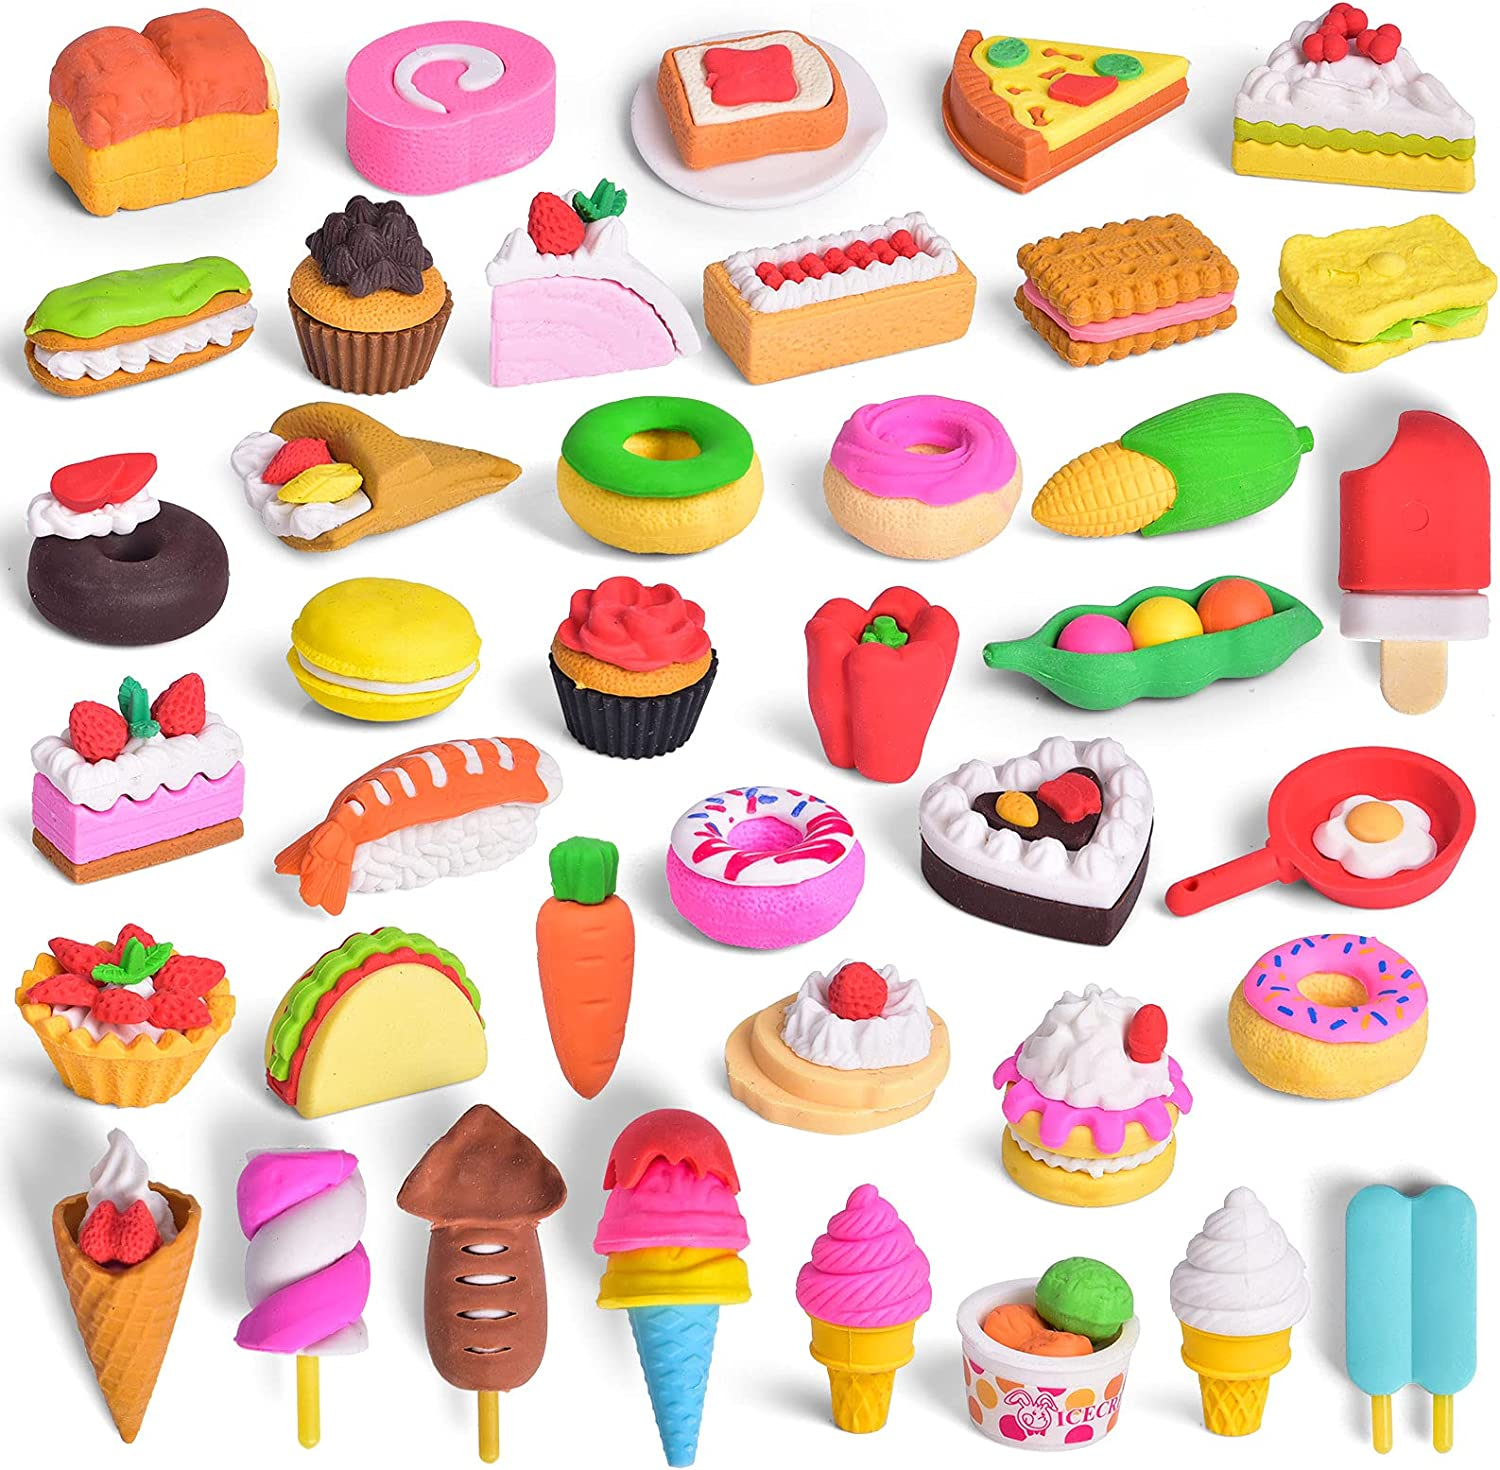 FUN LITTLE TOYS 40 Pack Pencil Erasers Toy for Kids, 3D Mini Puzzle Erasers Food Desert Fruit Erasers, School Rewards Classroom Game Prizes Treasure Box Party Favors for Kids Goodie Bags Carnivals